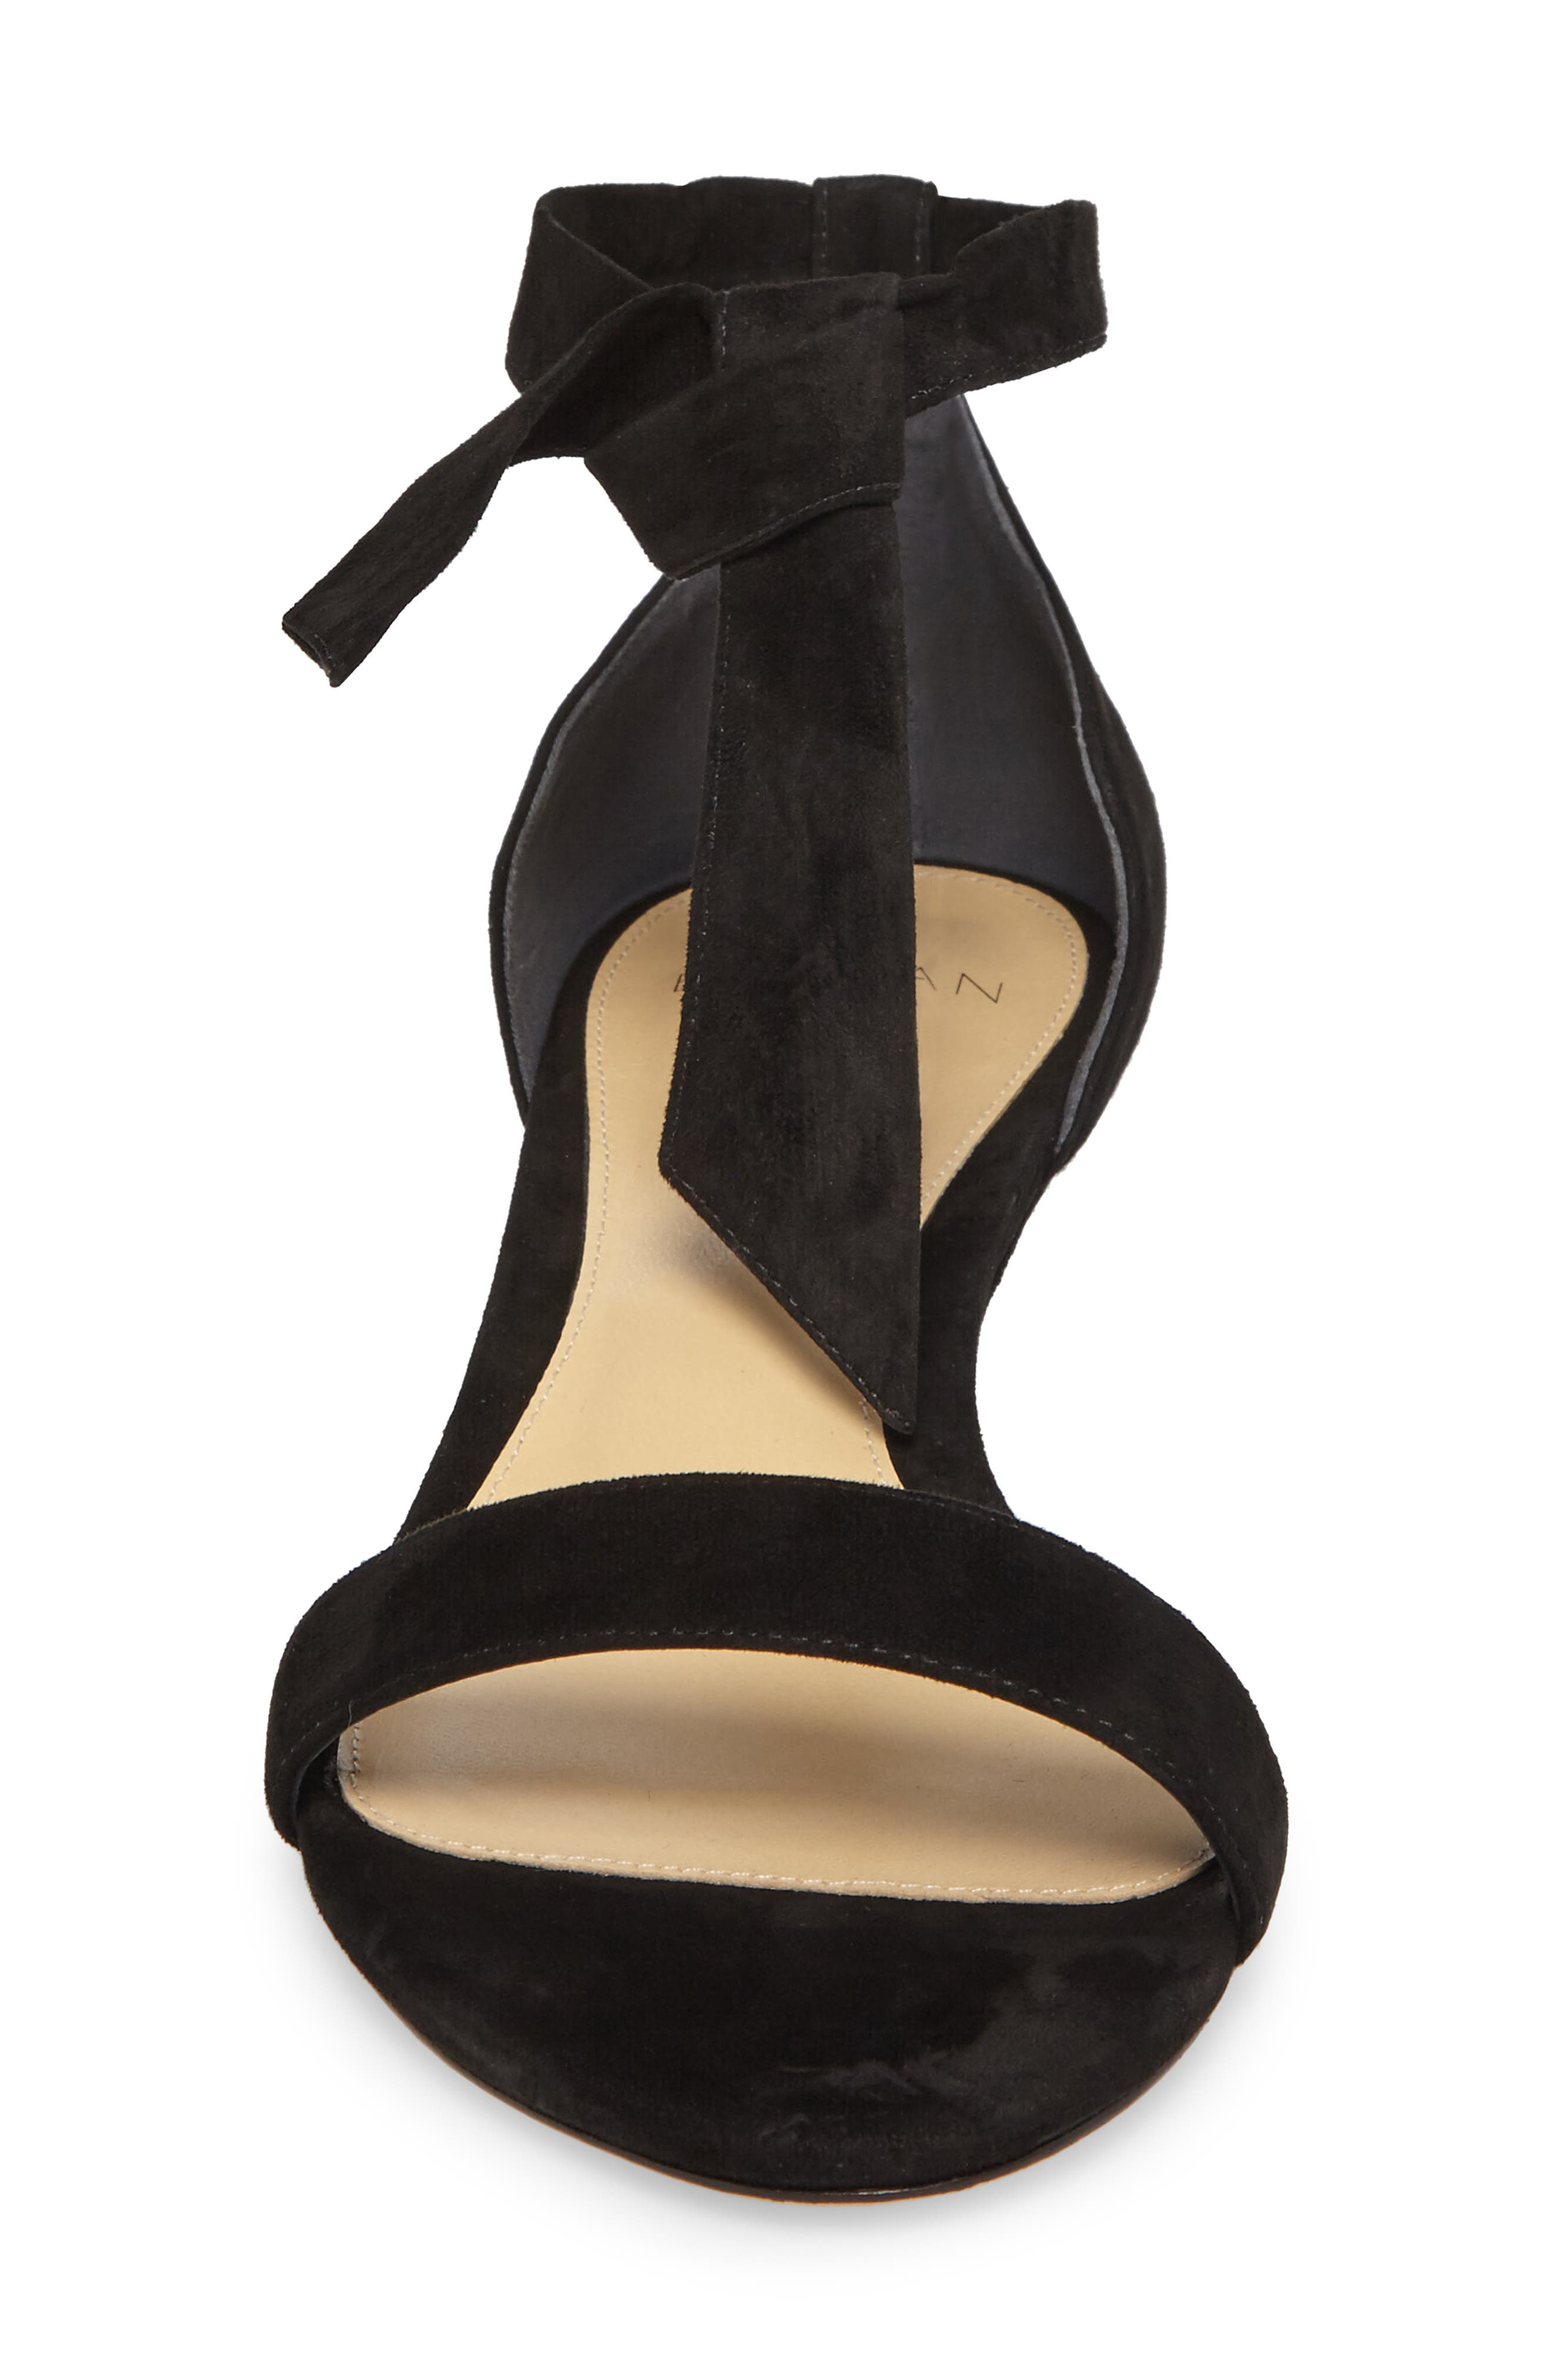 Atena Tie Strap Wedge Sandal,                             Alternate thumbnail 4, color,                             Black Suede